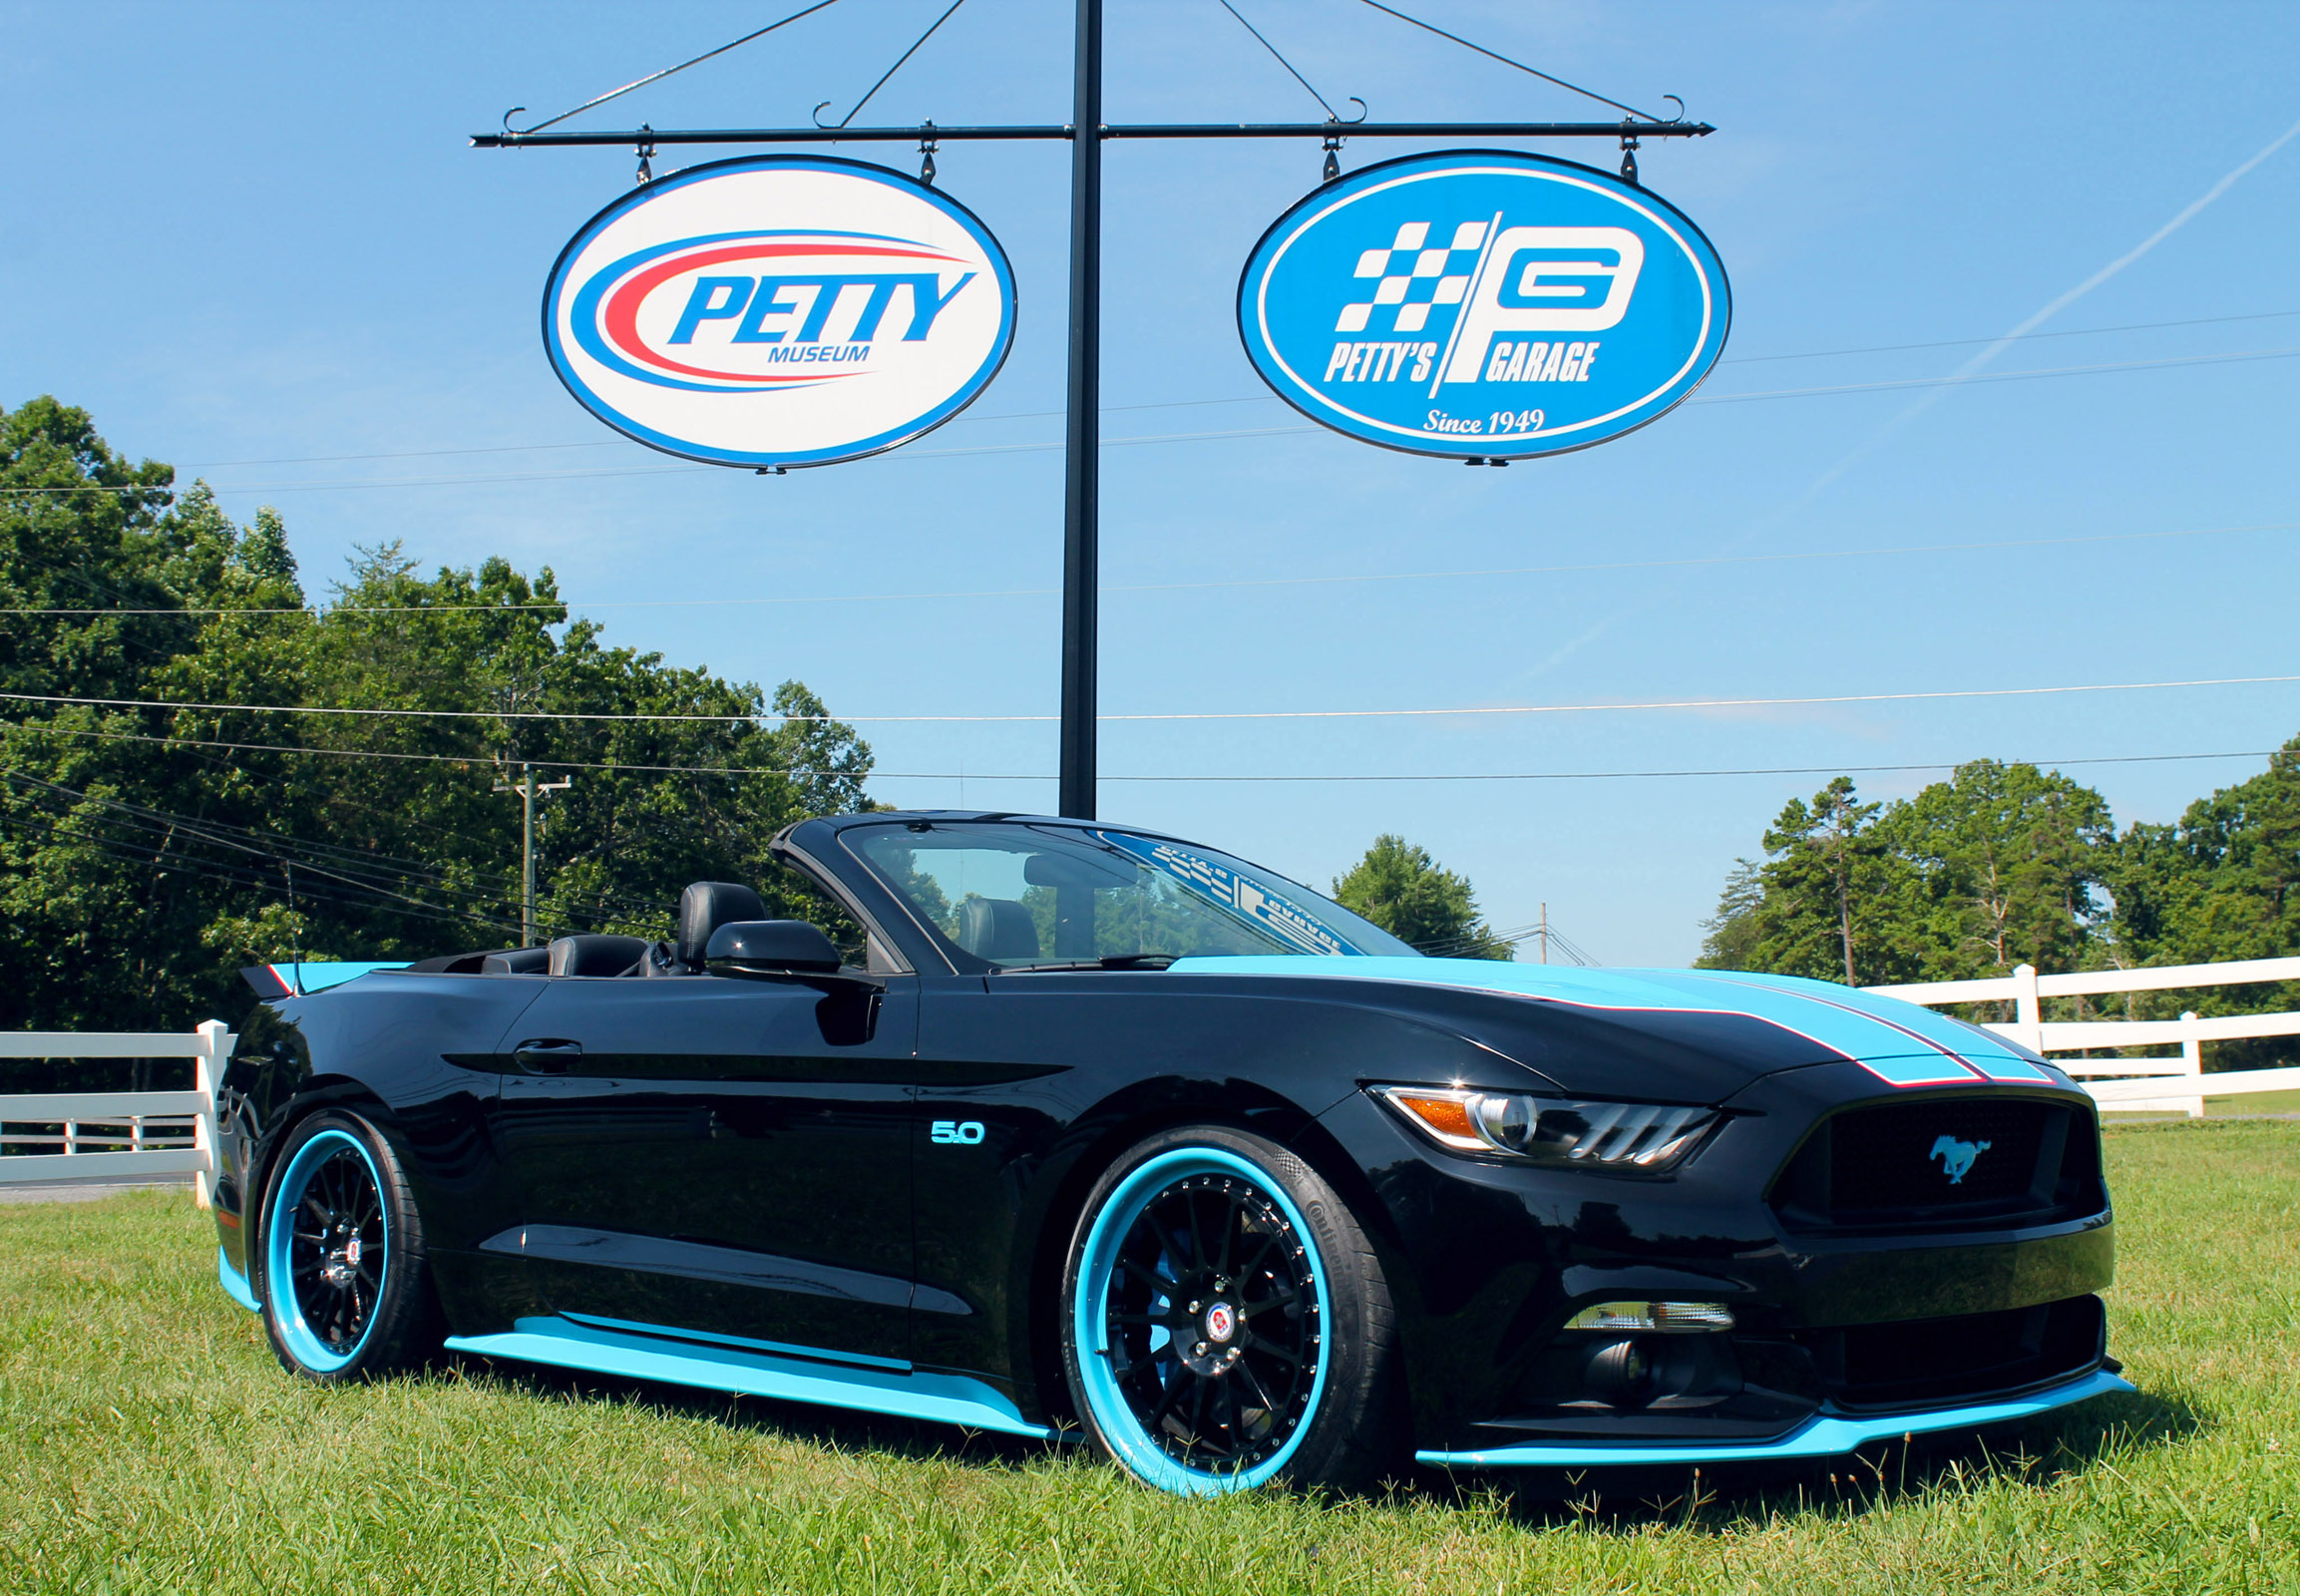 2015 Pettys Garage Mustang GT King Edition